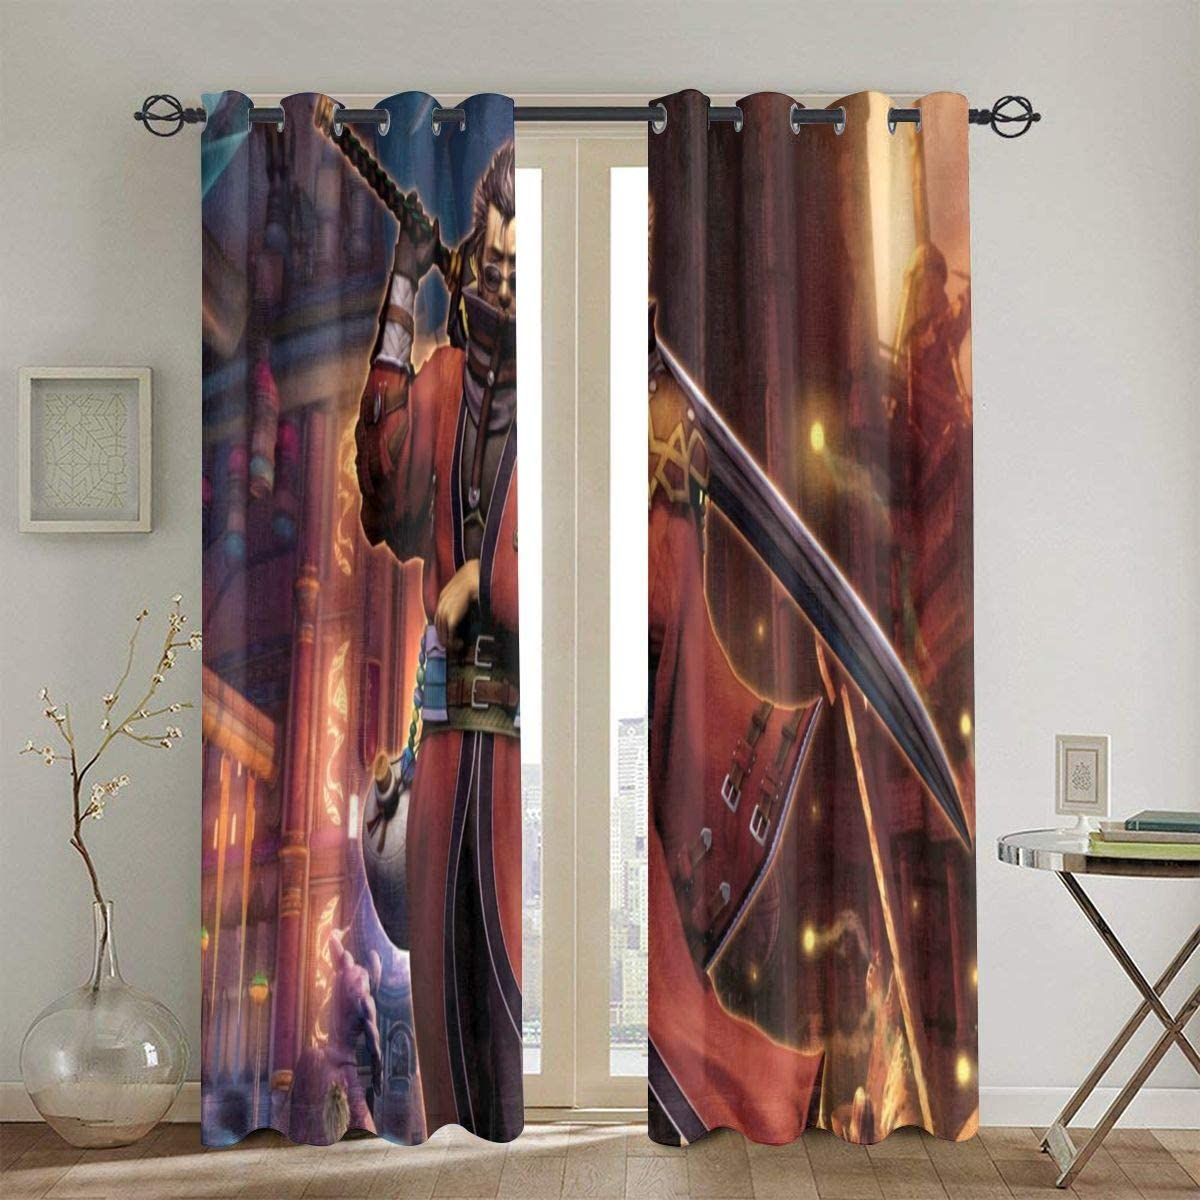 PHOEBE DOHERTY Final Fantasy X-Auron Anime Manga Window Treatment Curtain 2 Panels Each 52 X 72 in Punch for Badroom, Living Room